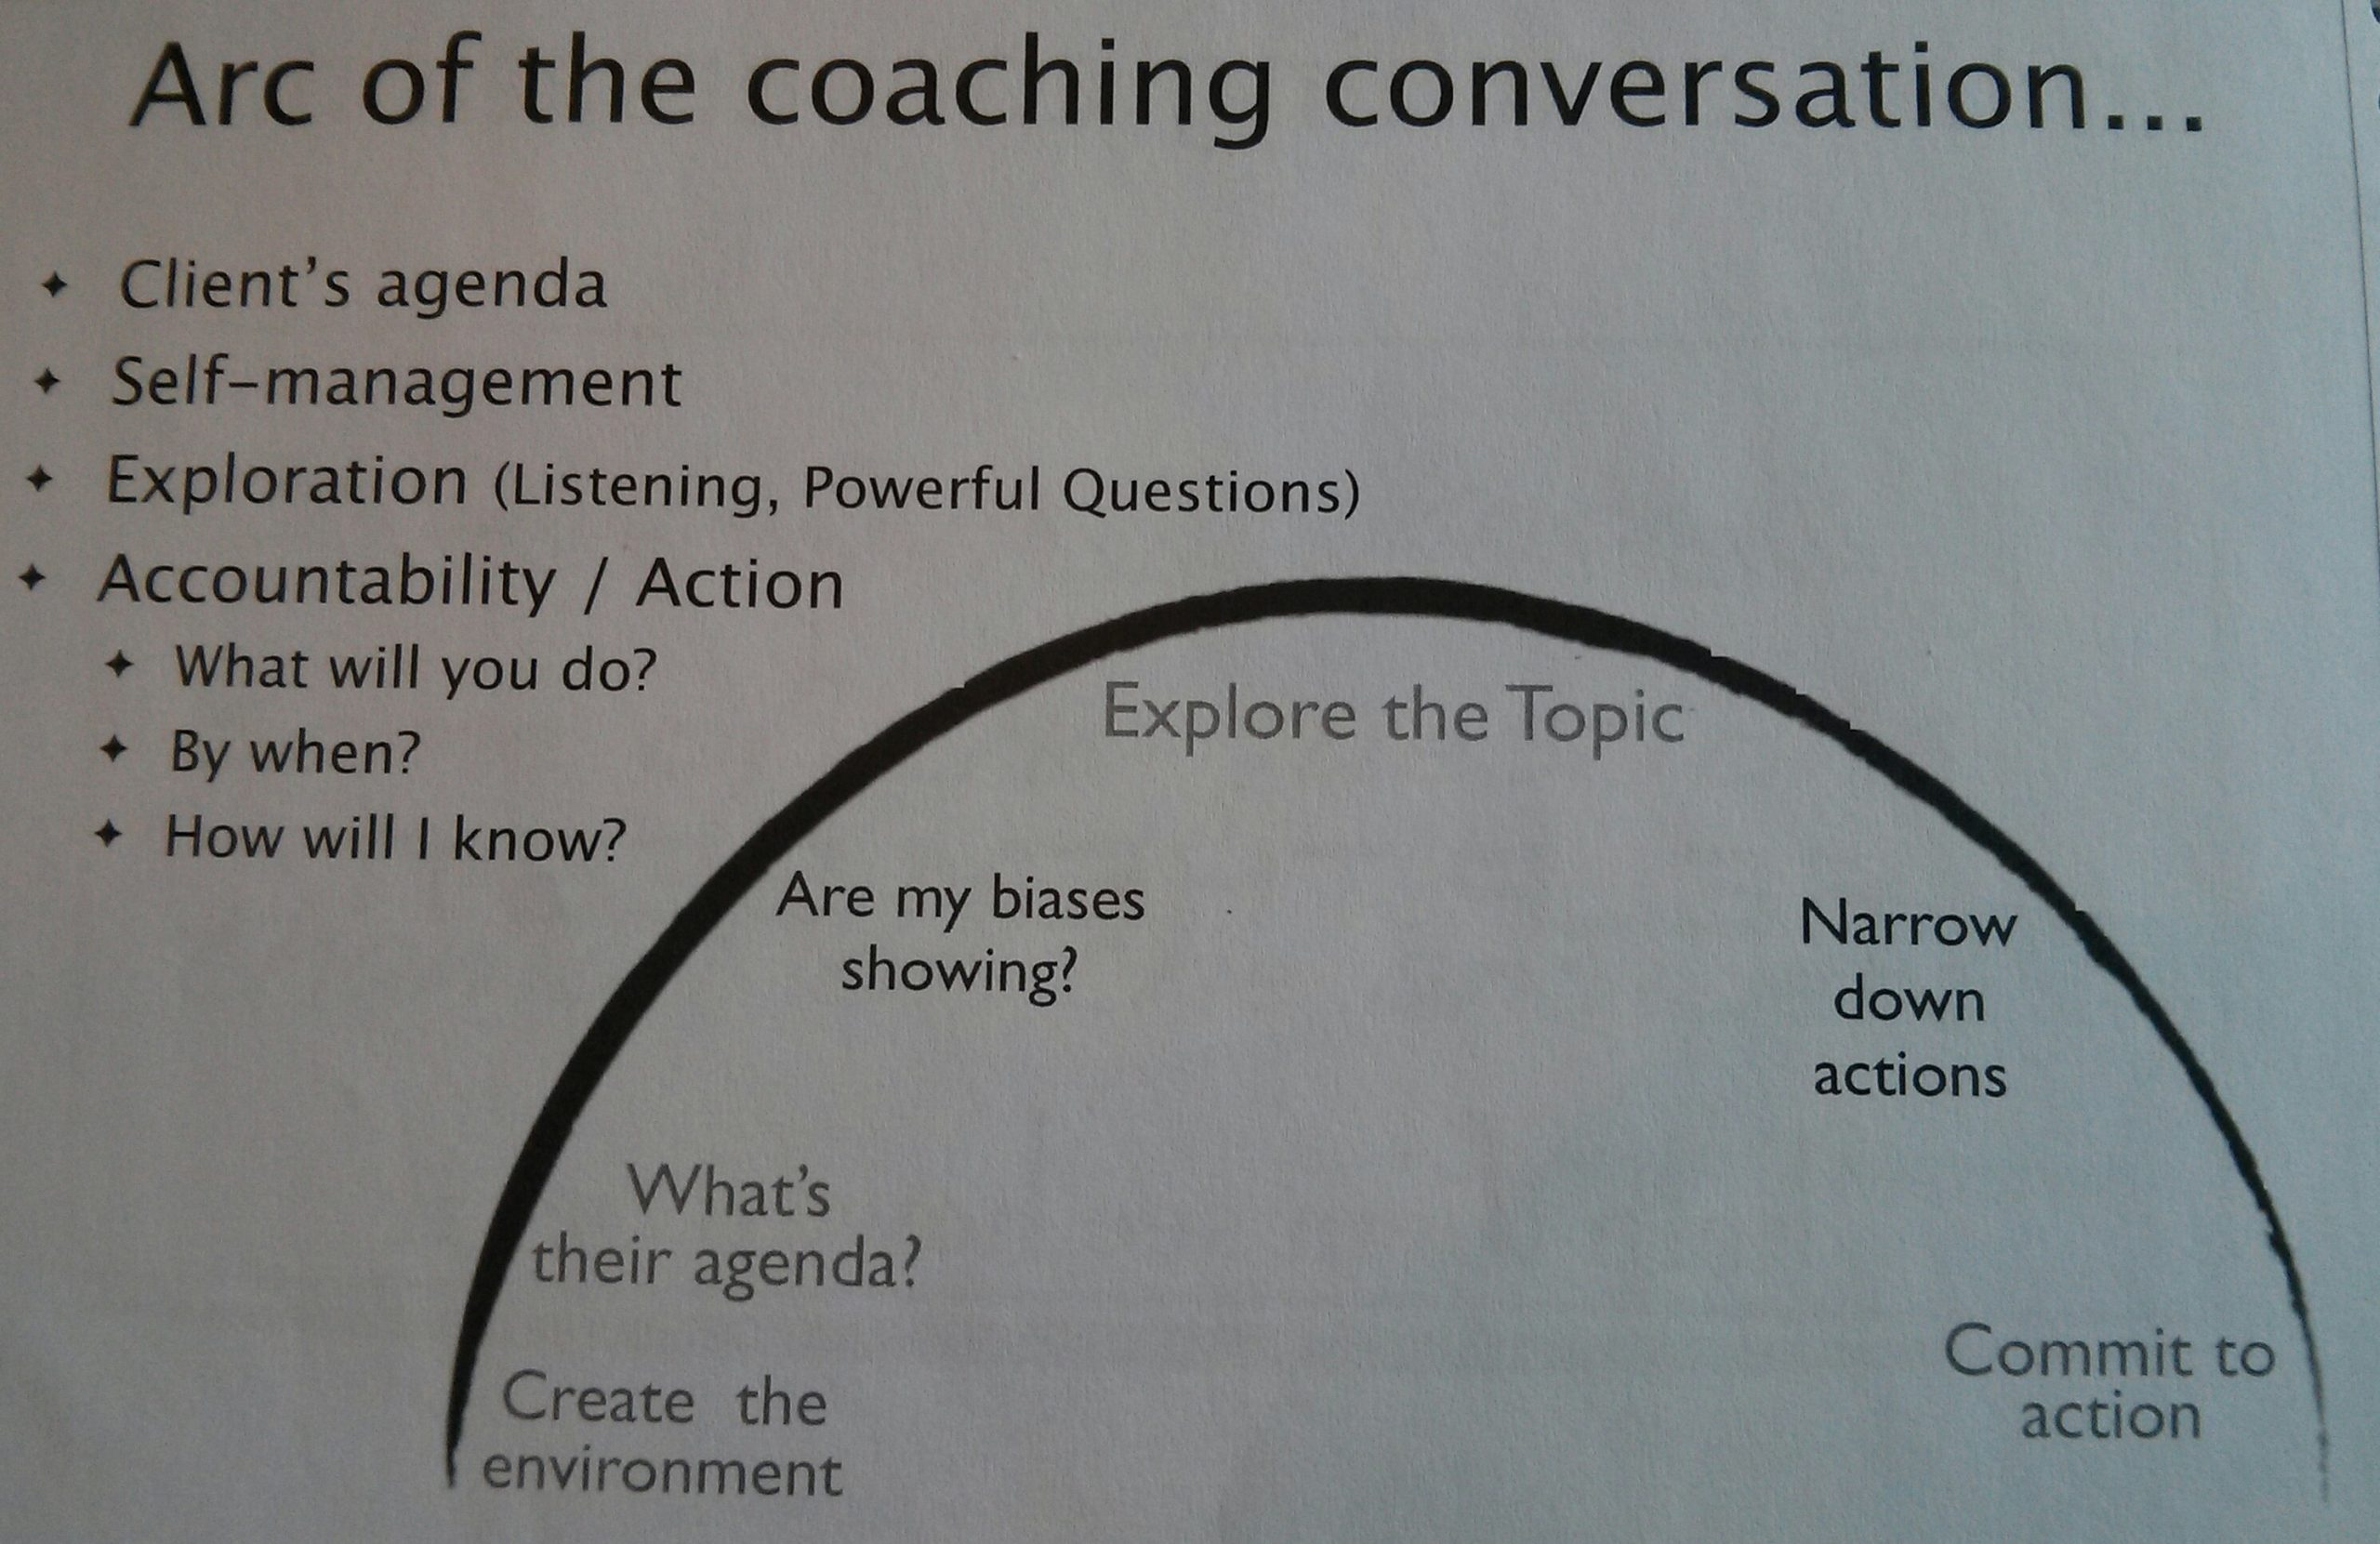 Arc of the coaching conversation